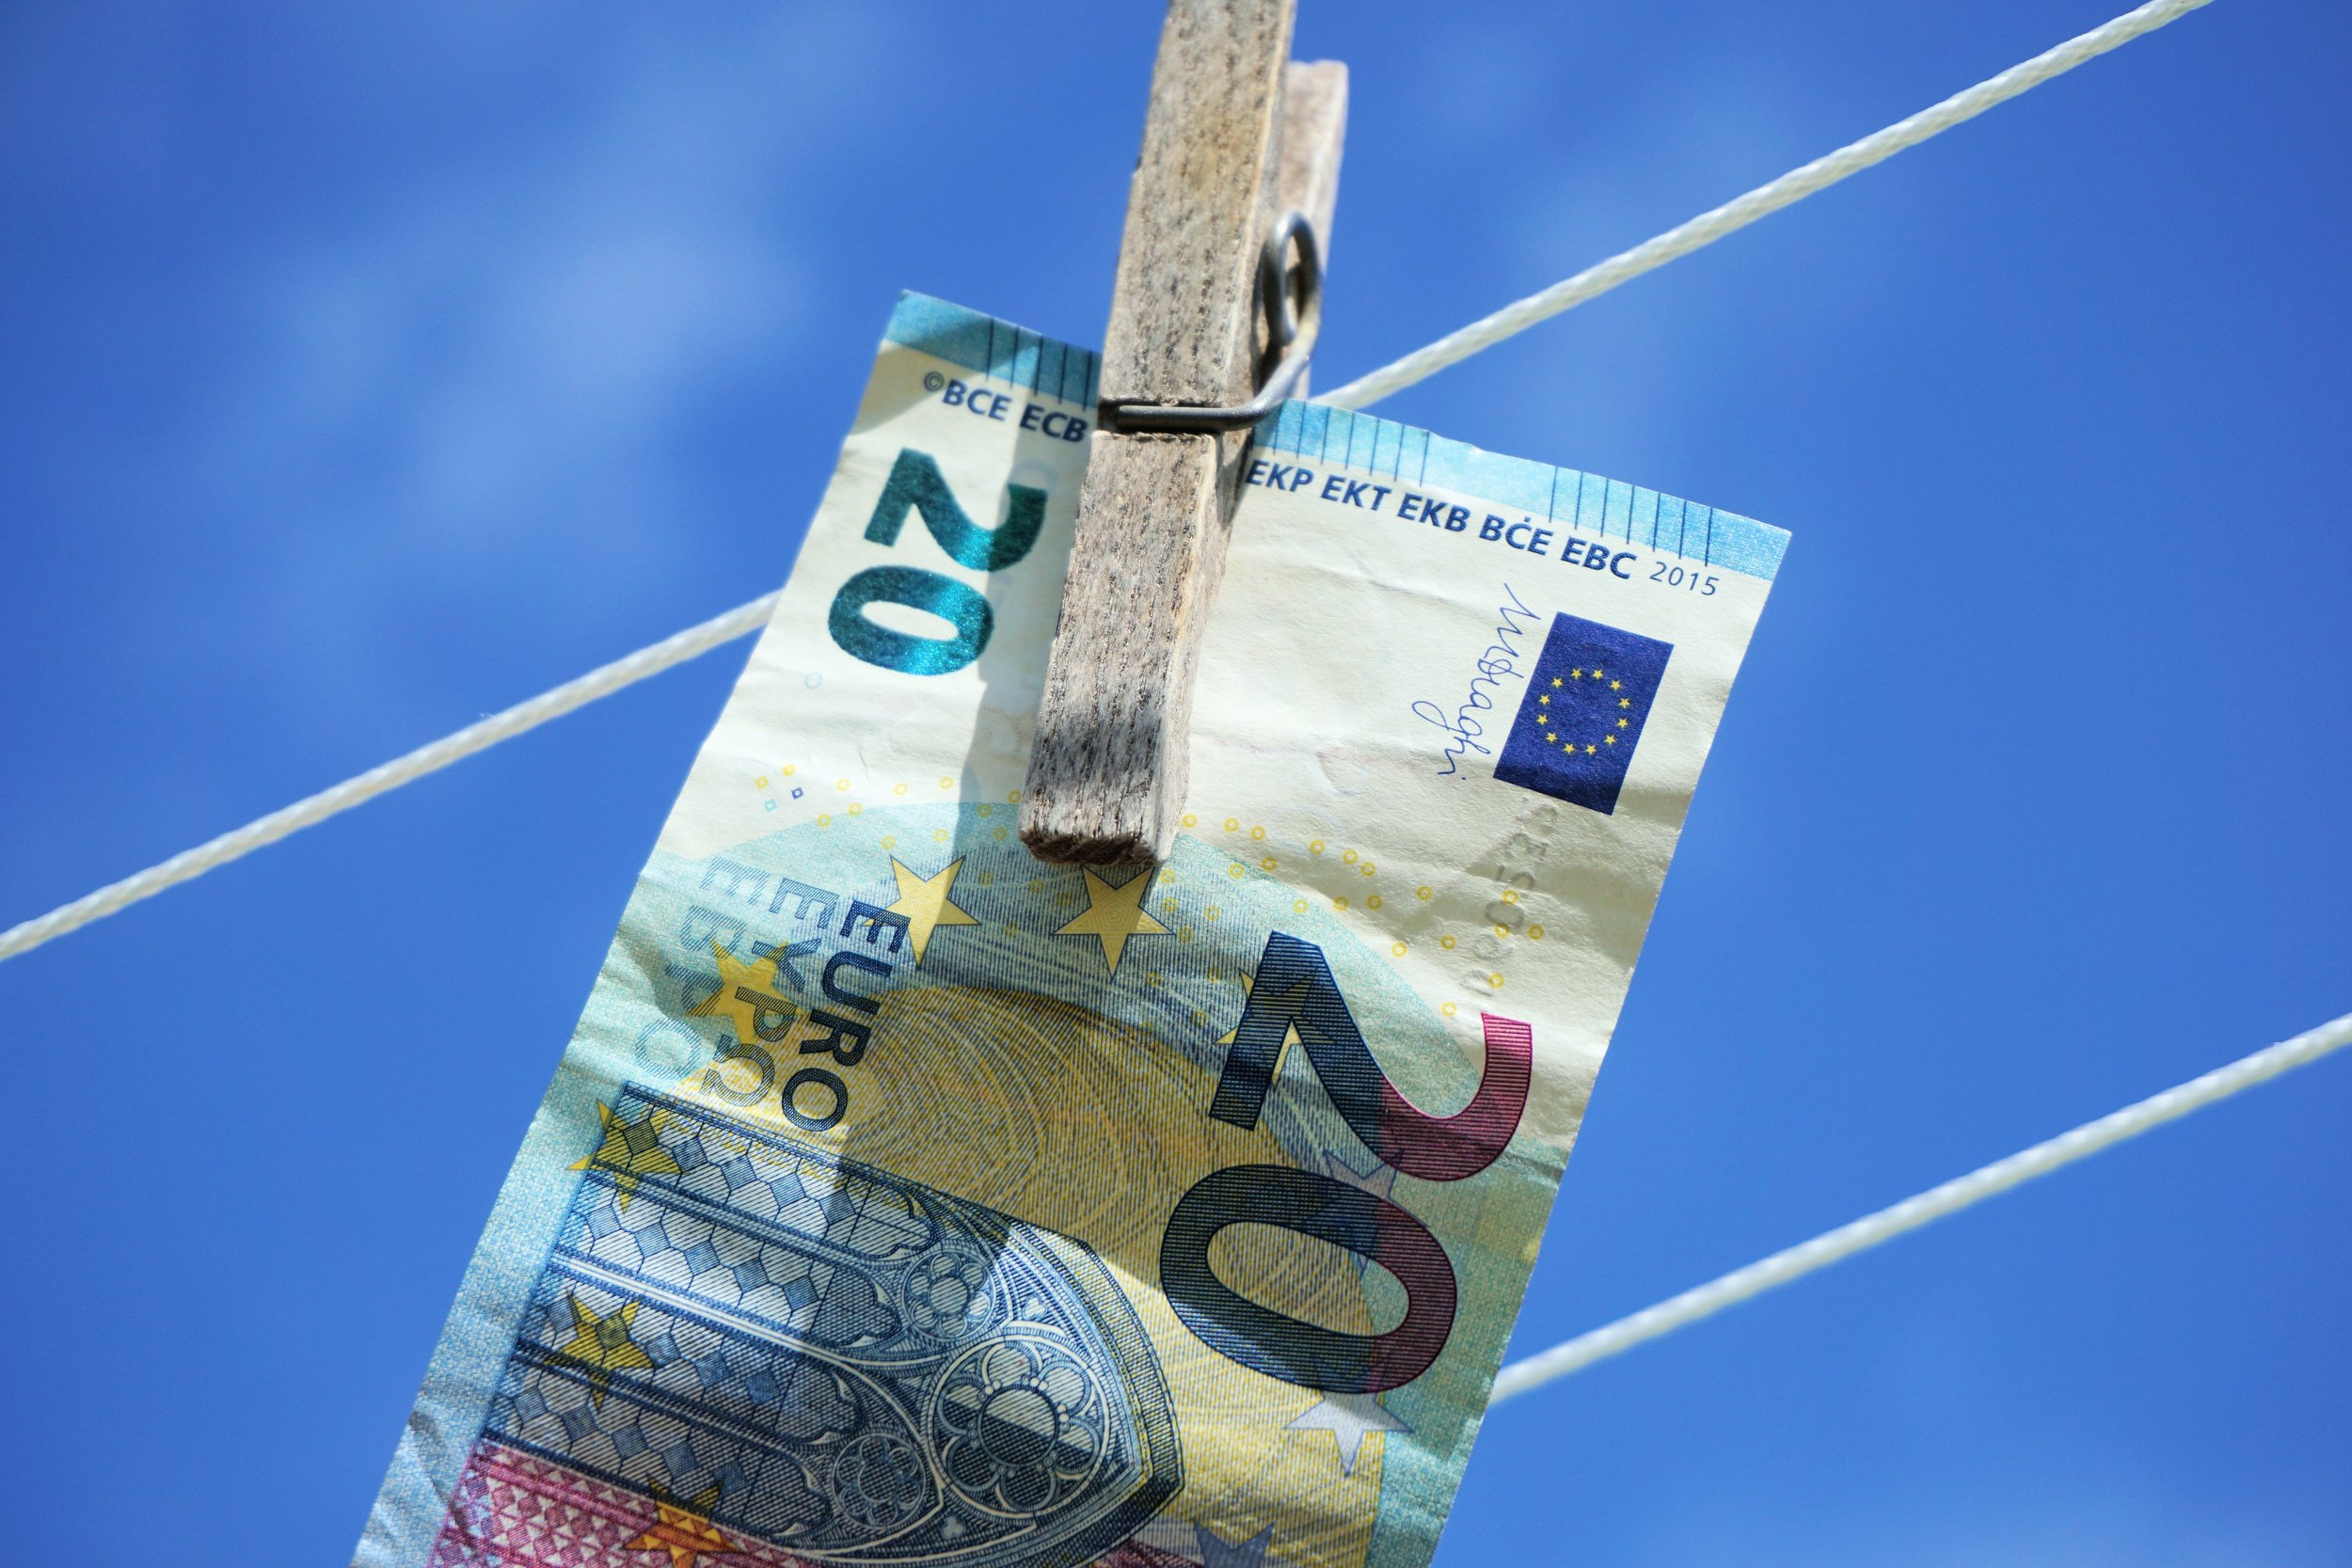 dry-money-blue-cash-currency-euro-577325-pxhere.com_.jpg